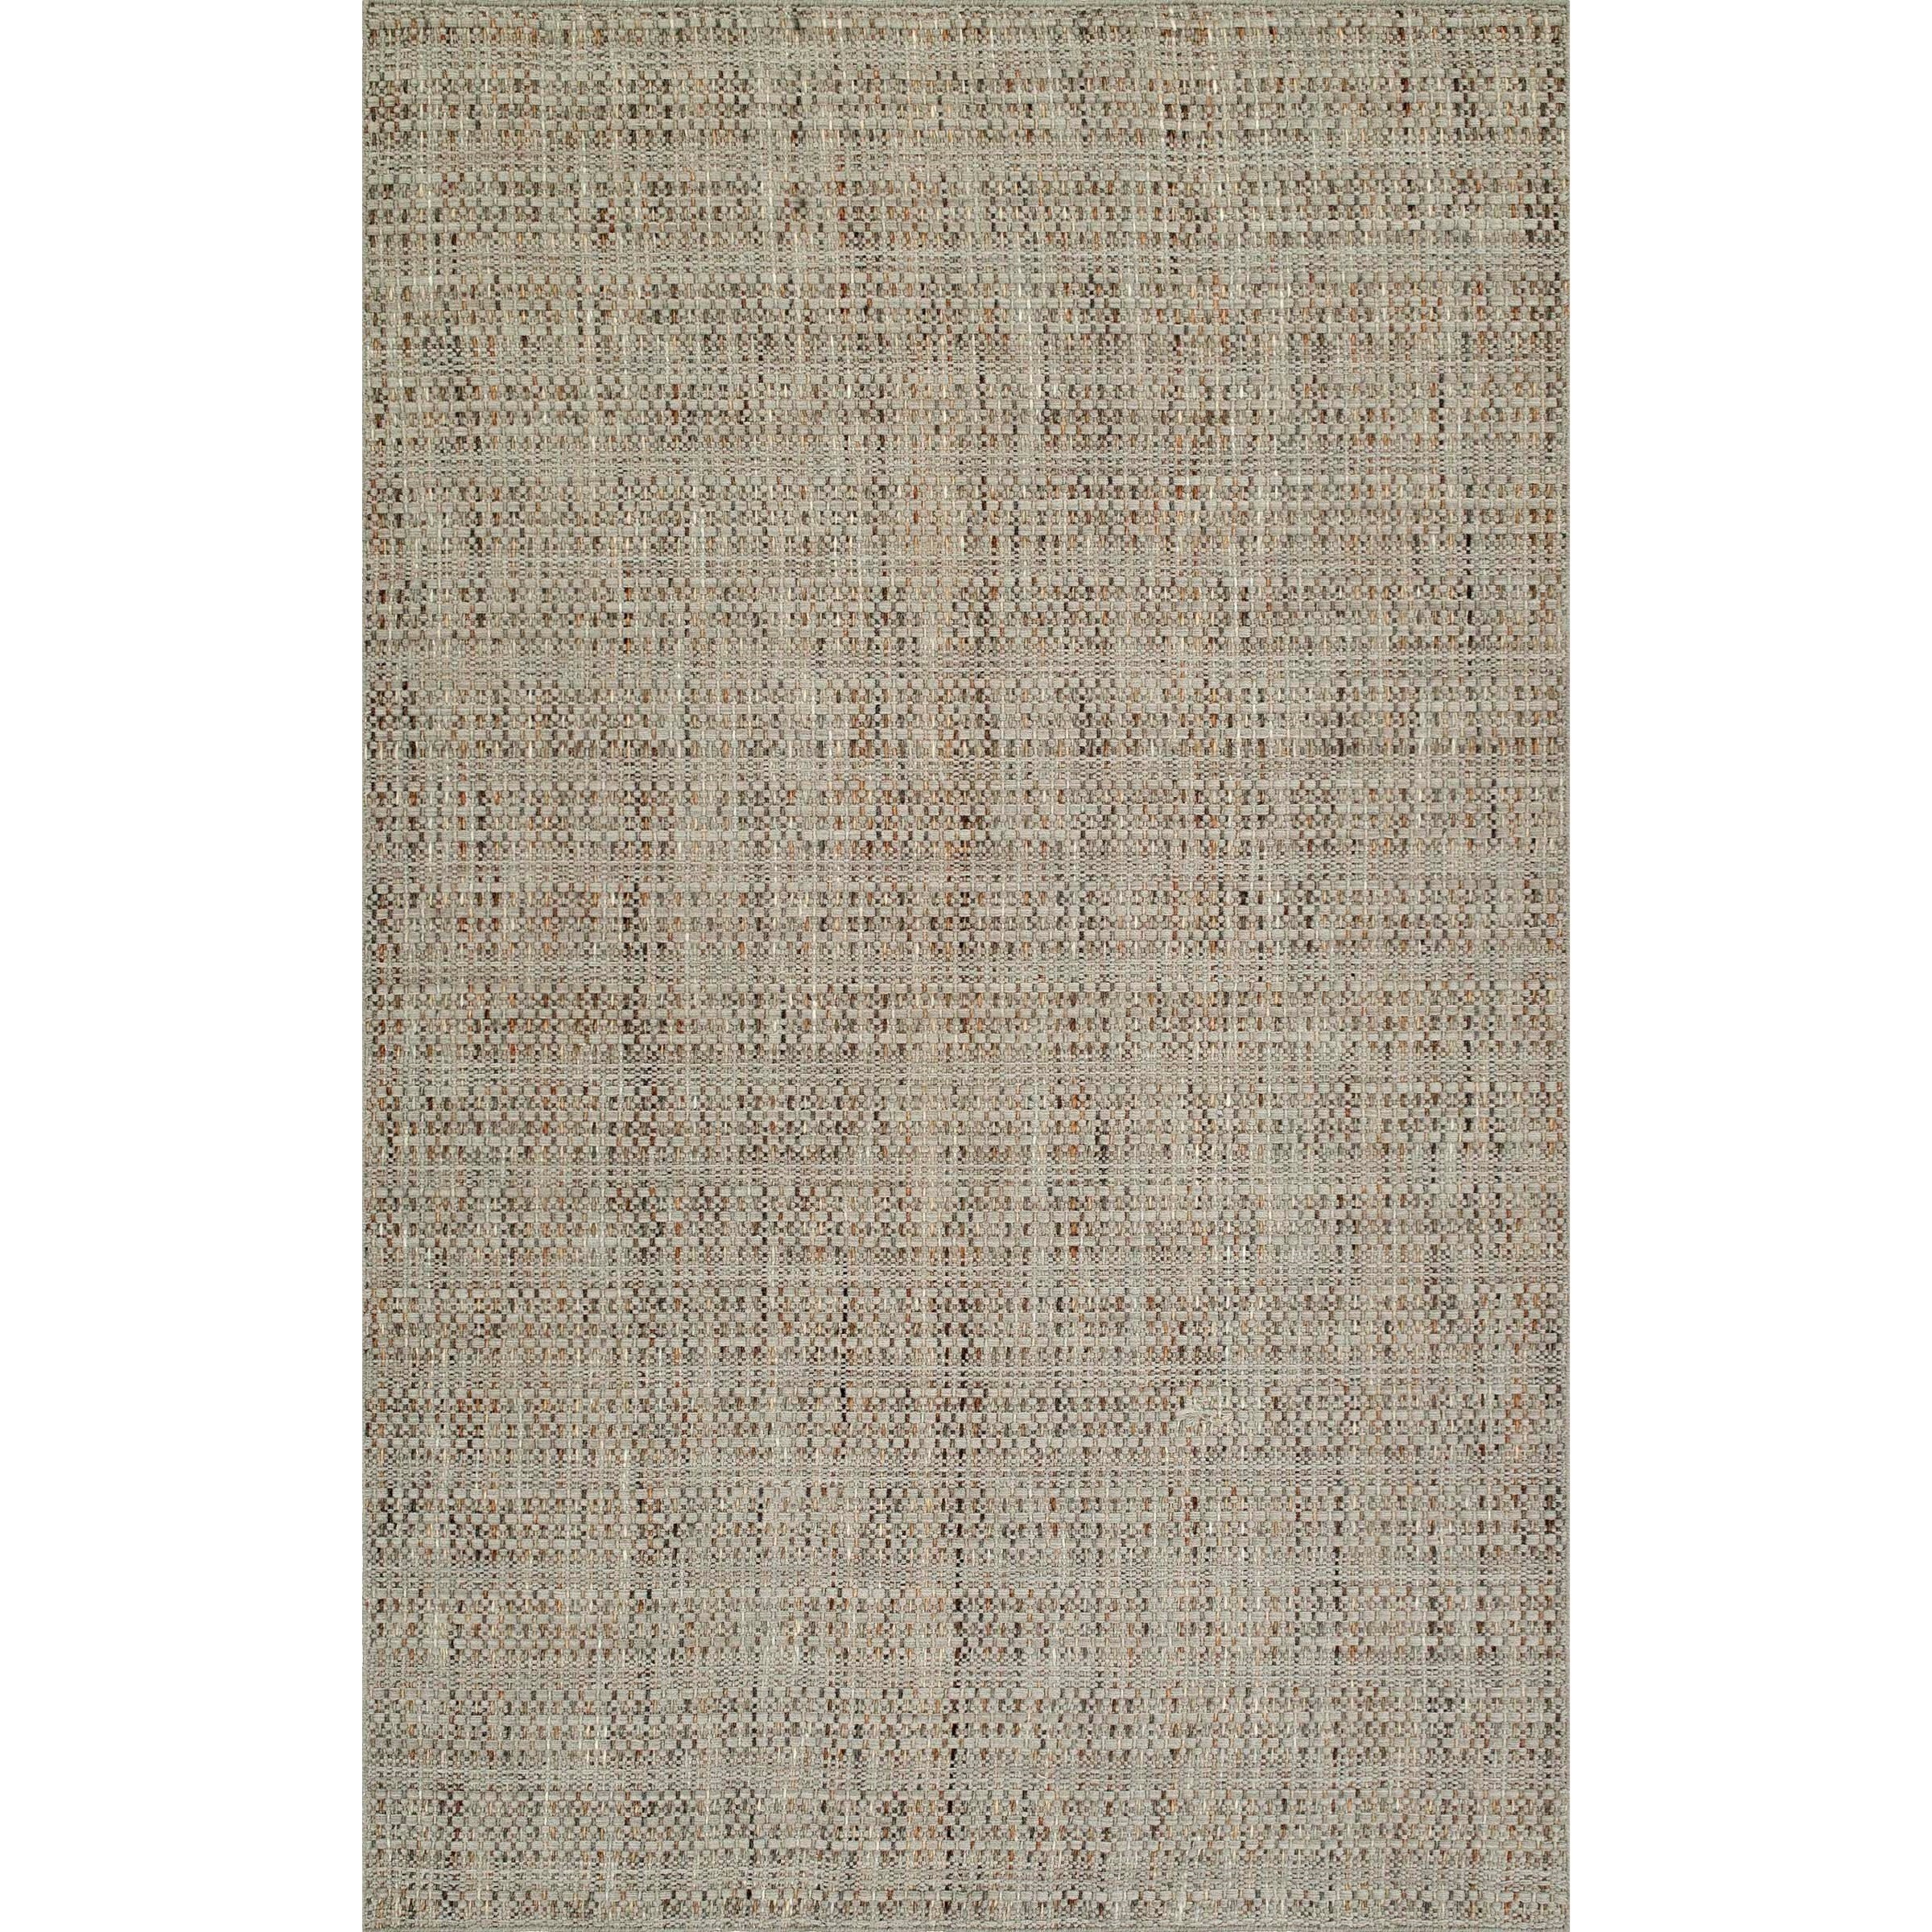 Nepal Taupe 9' x 13' Rug by Dalyn at Fashion Furniture